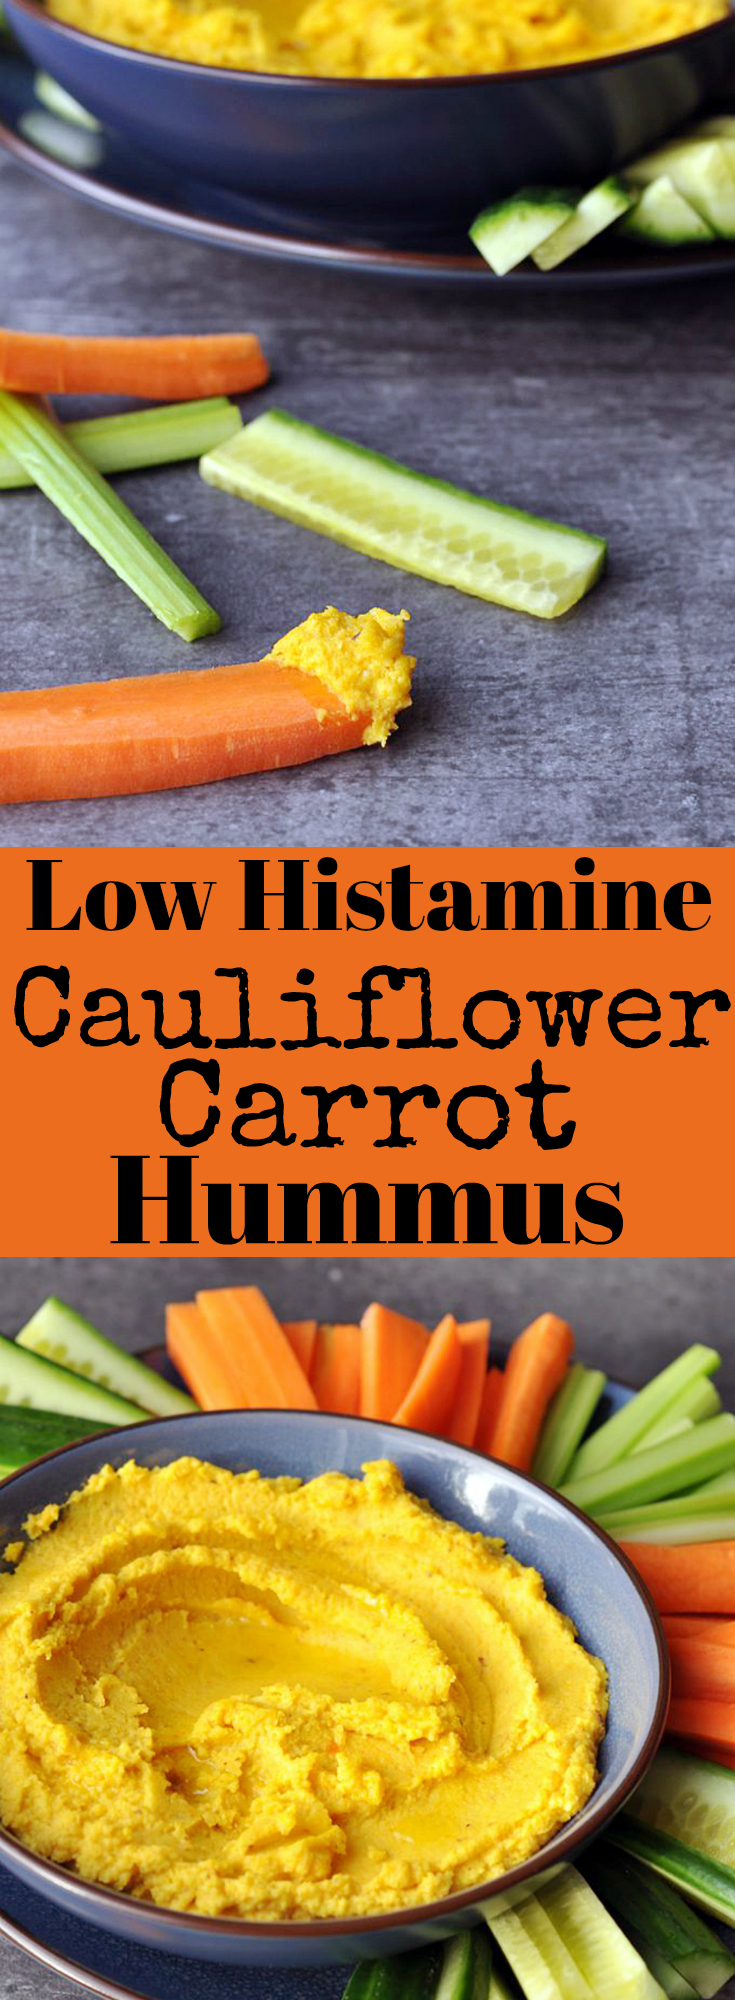 Low Histamine Cauliflower Carrot Hummus - Bean Free!